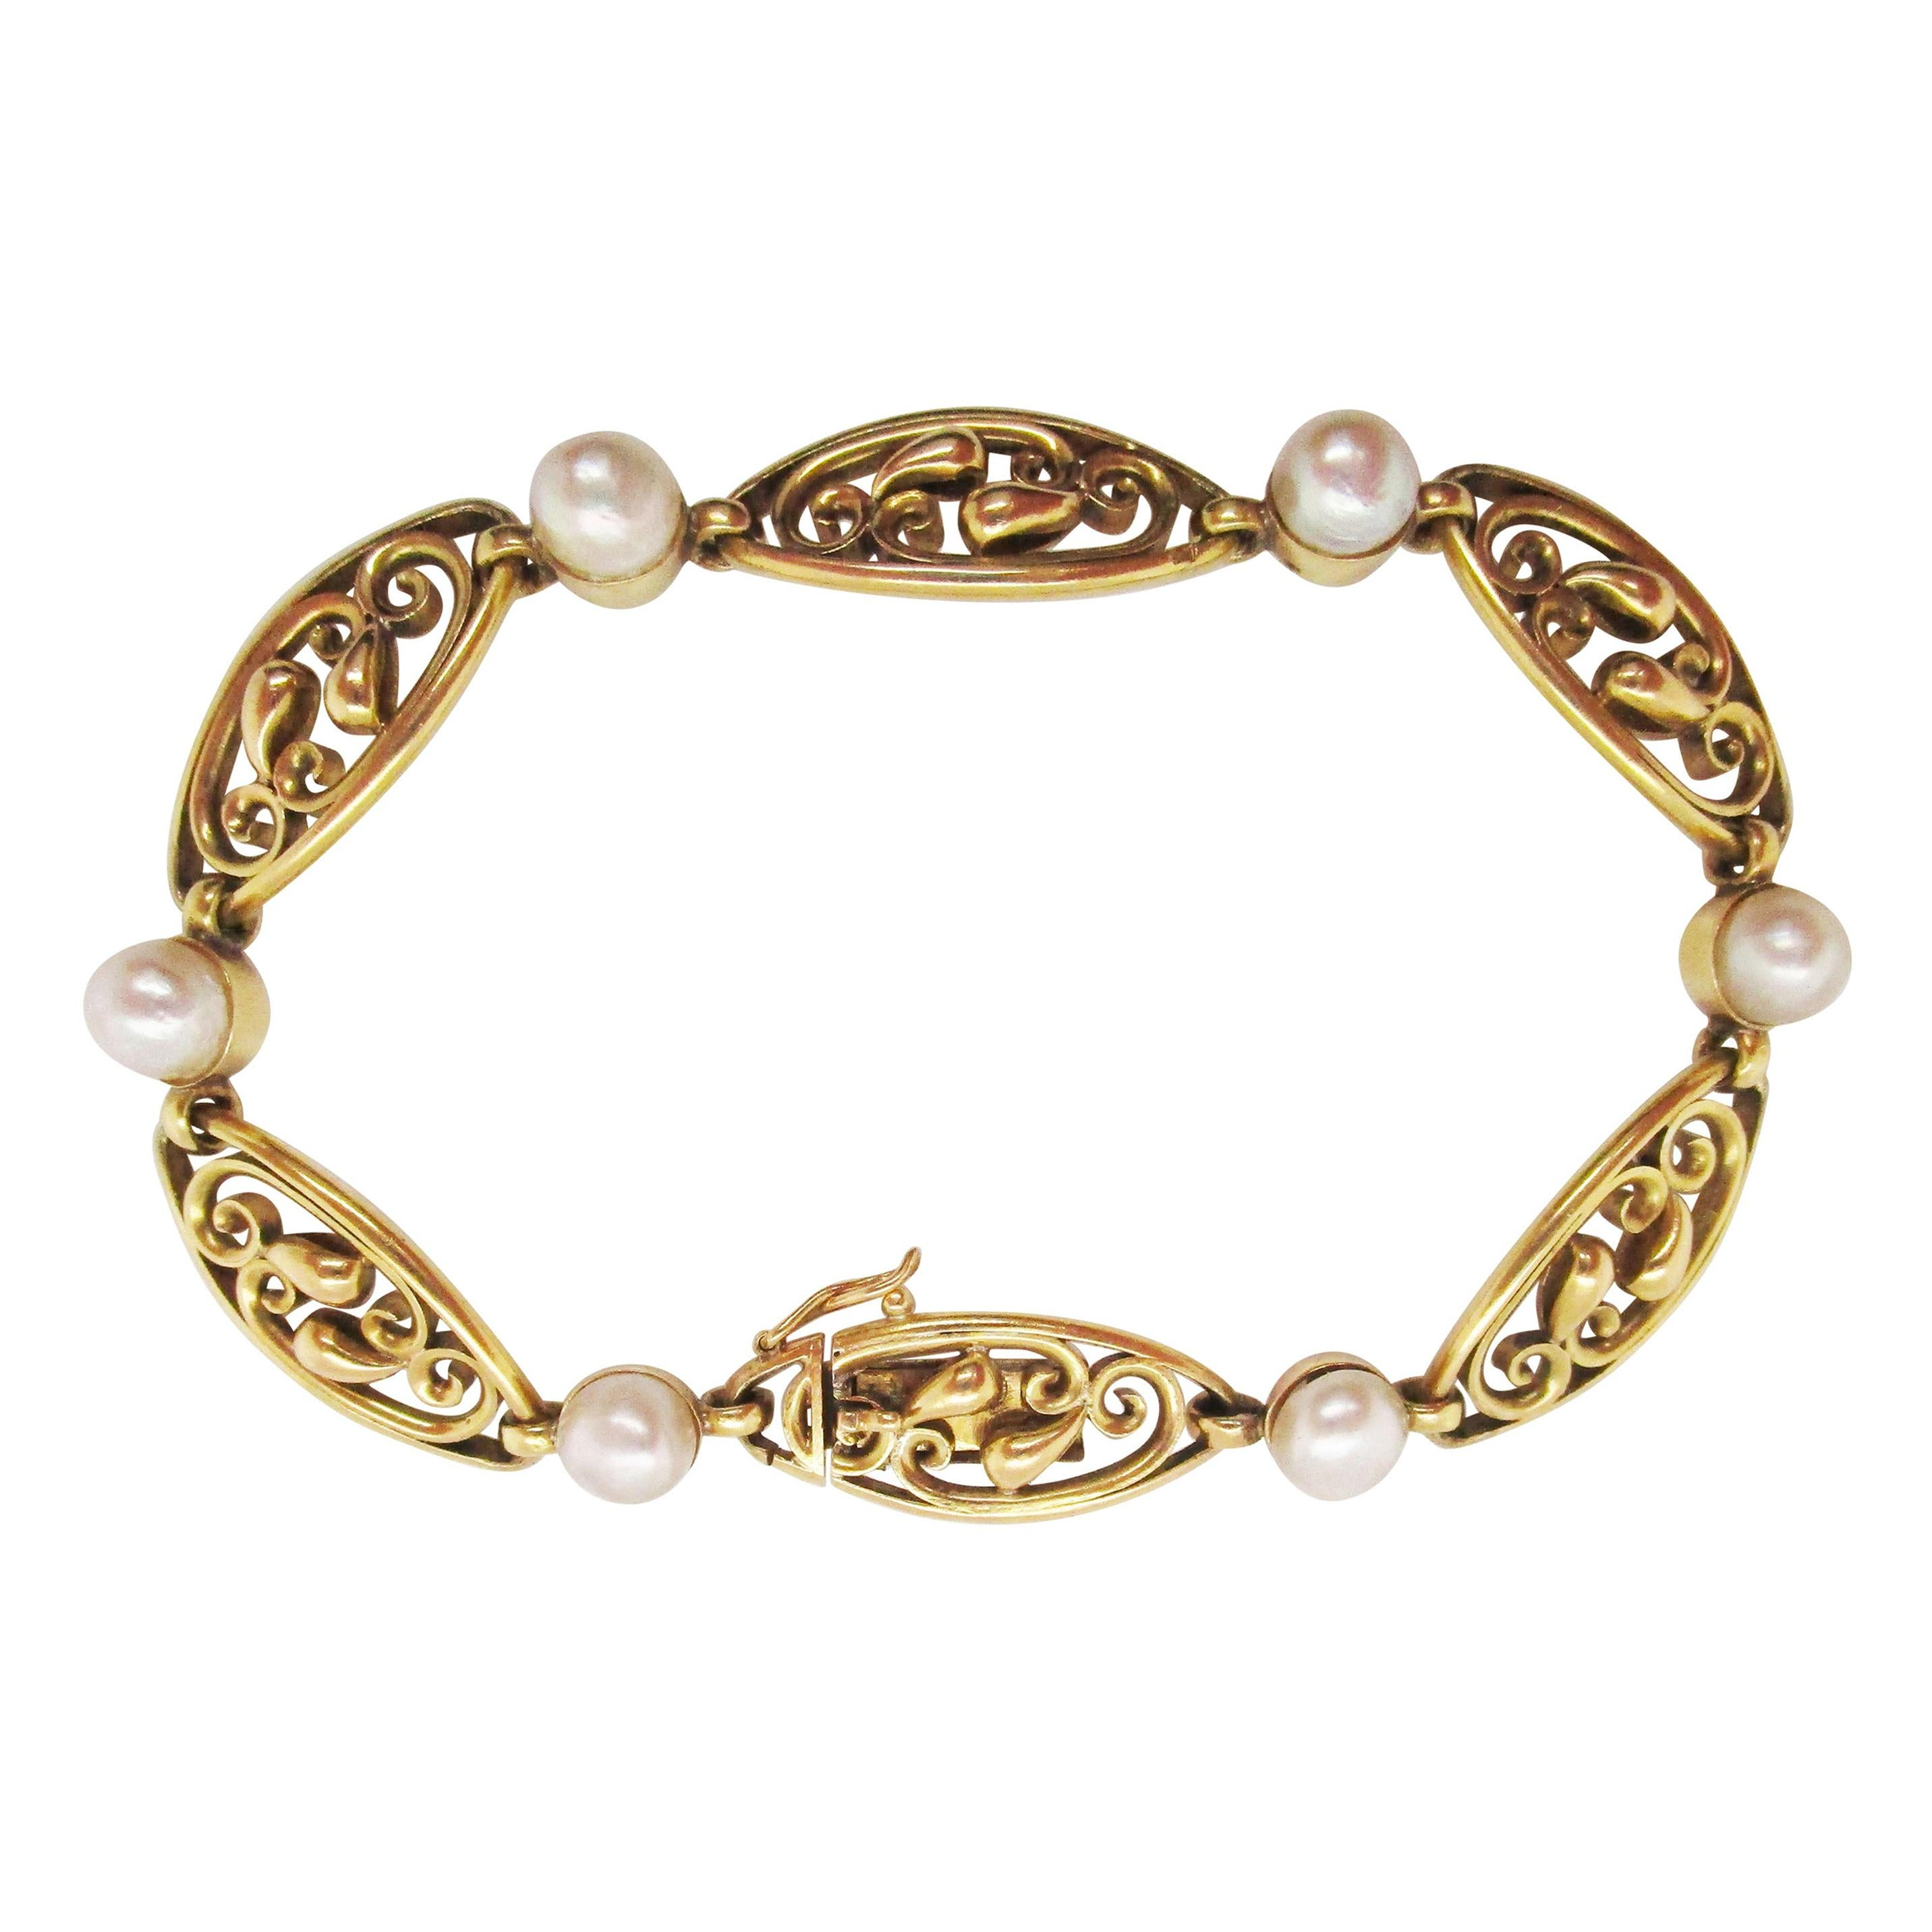 1890 Art Nouveau French 18 Karat Gold and GIA Certified Natural Pearl Bracelet